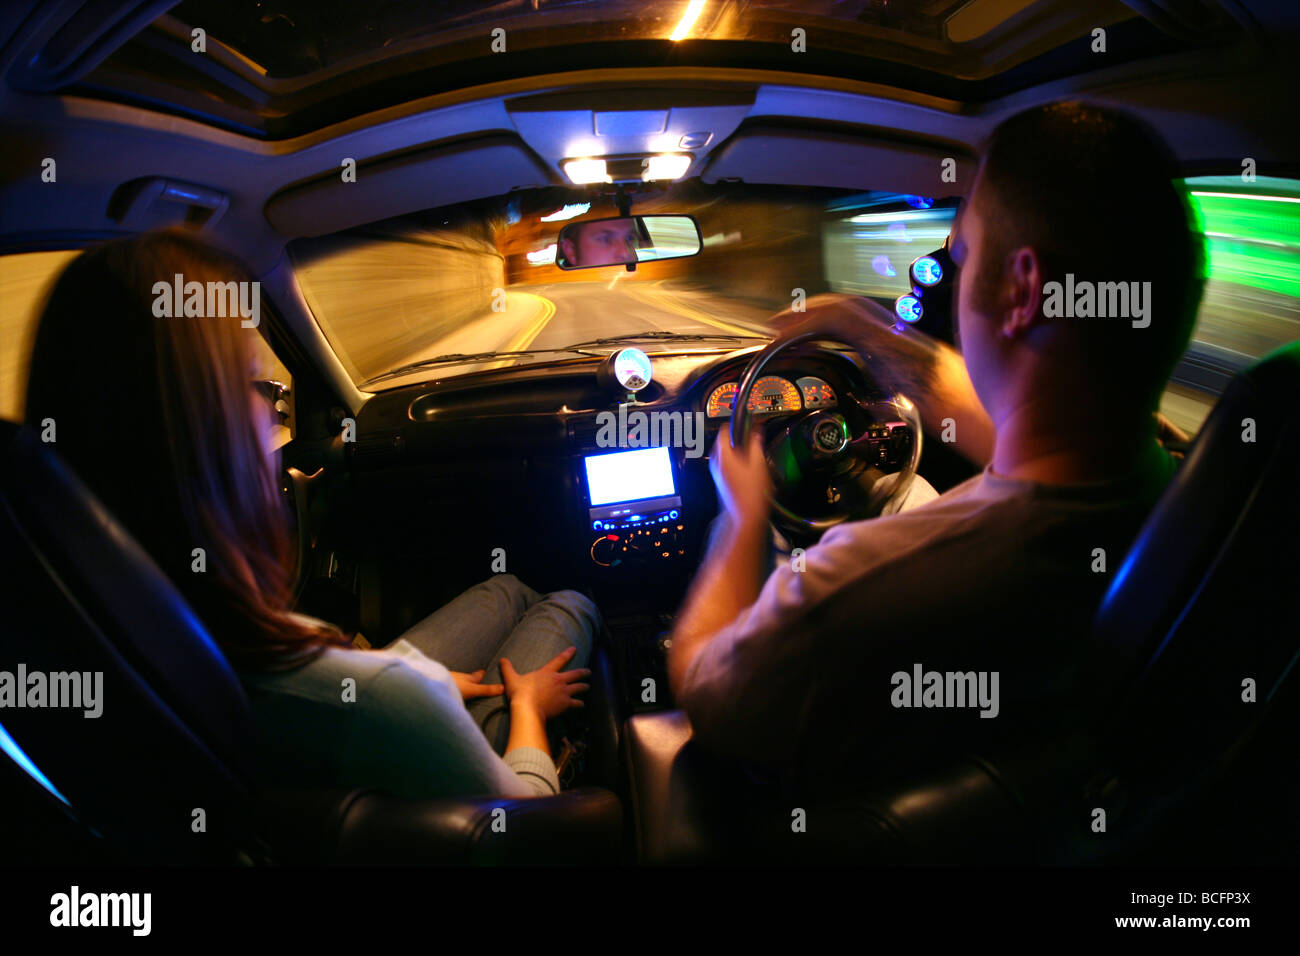 young man and girl driving through town at night in a